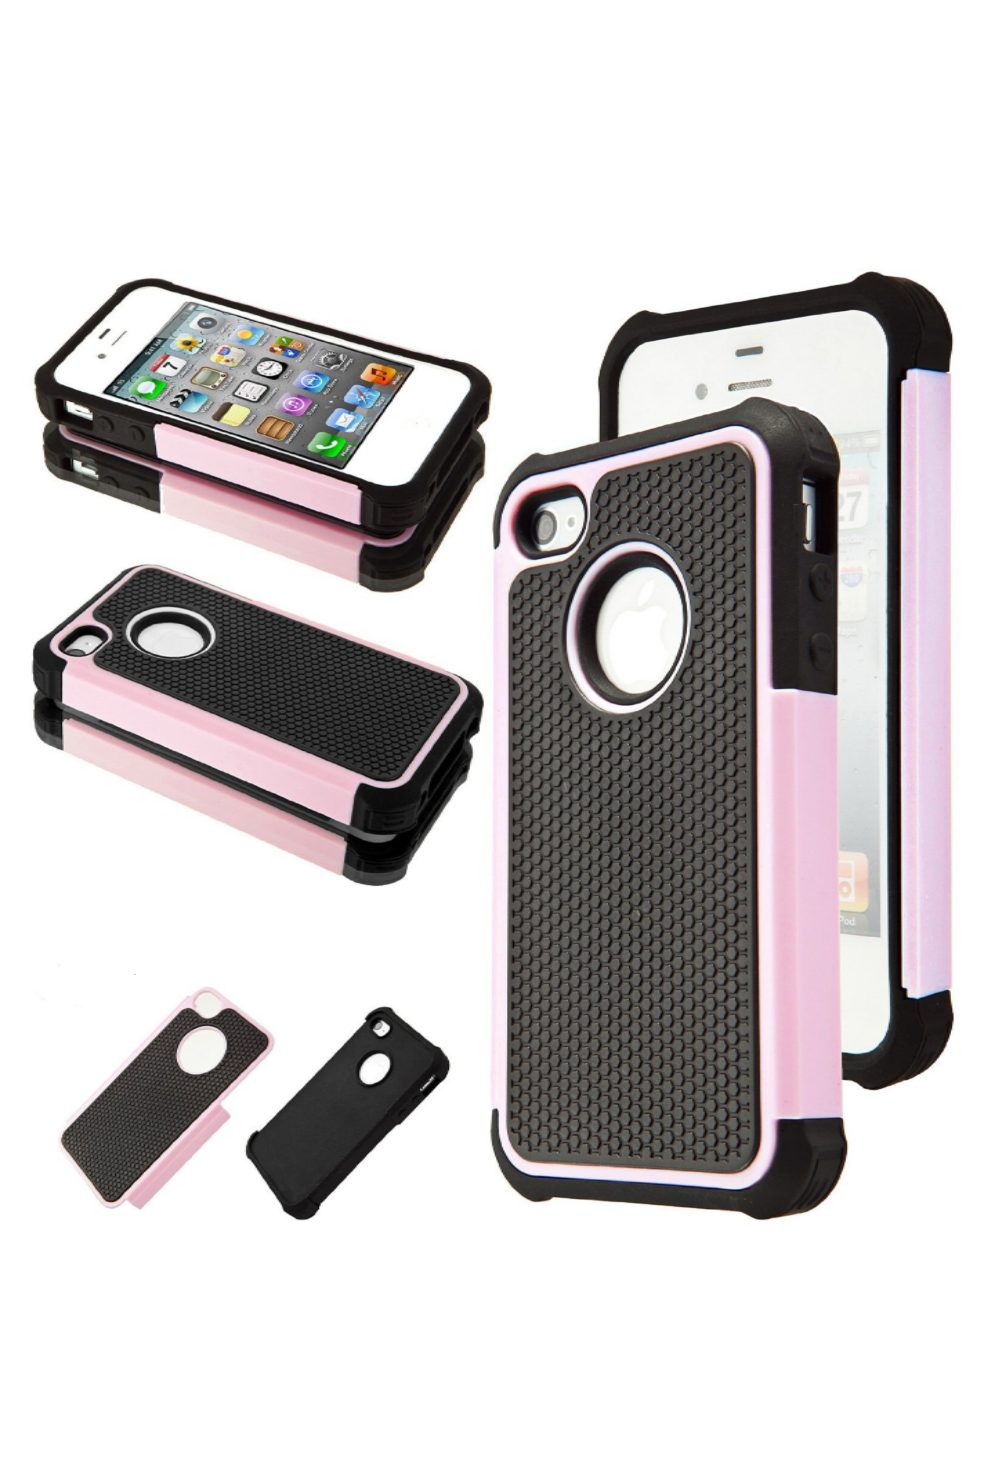 iPone 4/4s Hybrid Black/Pink Rubber Rugged Hard Impact Protector Case Cover